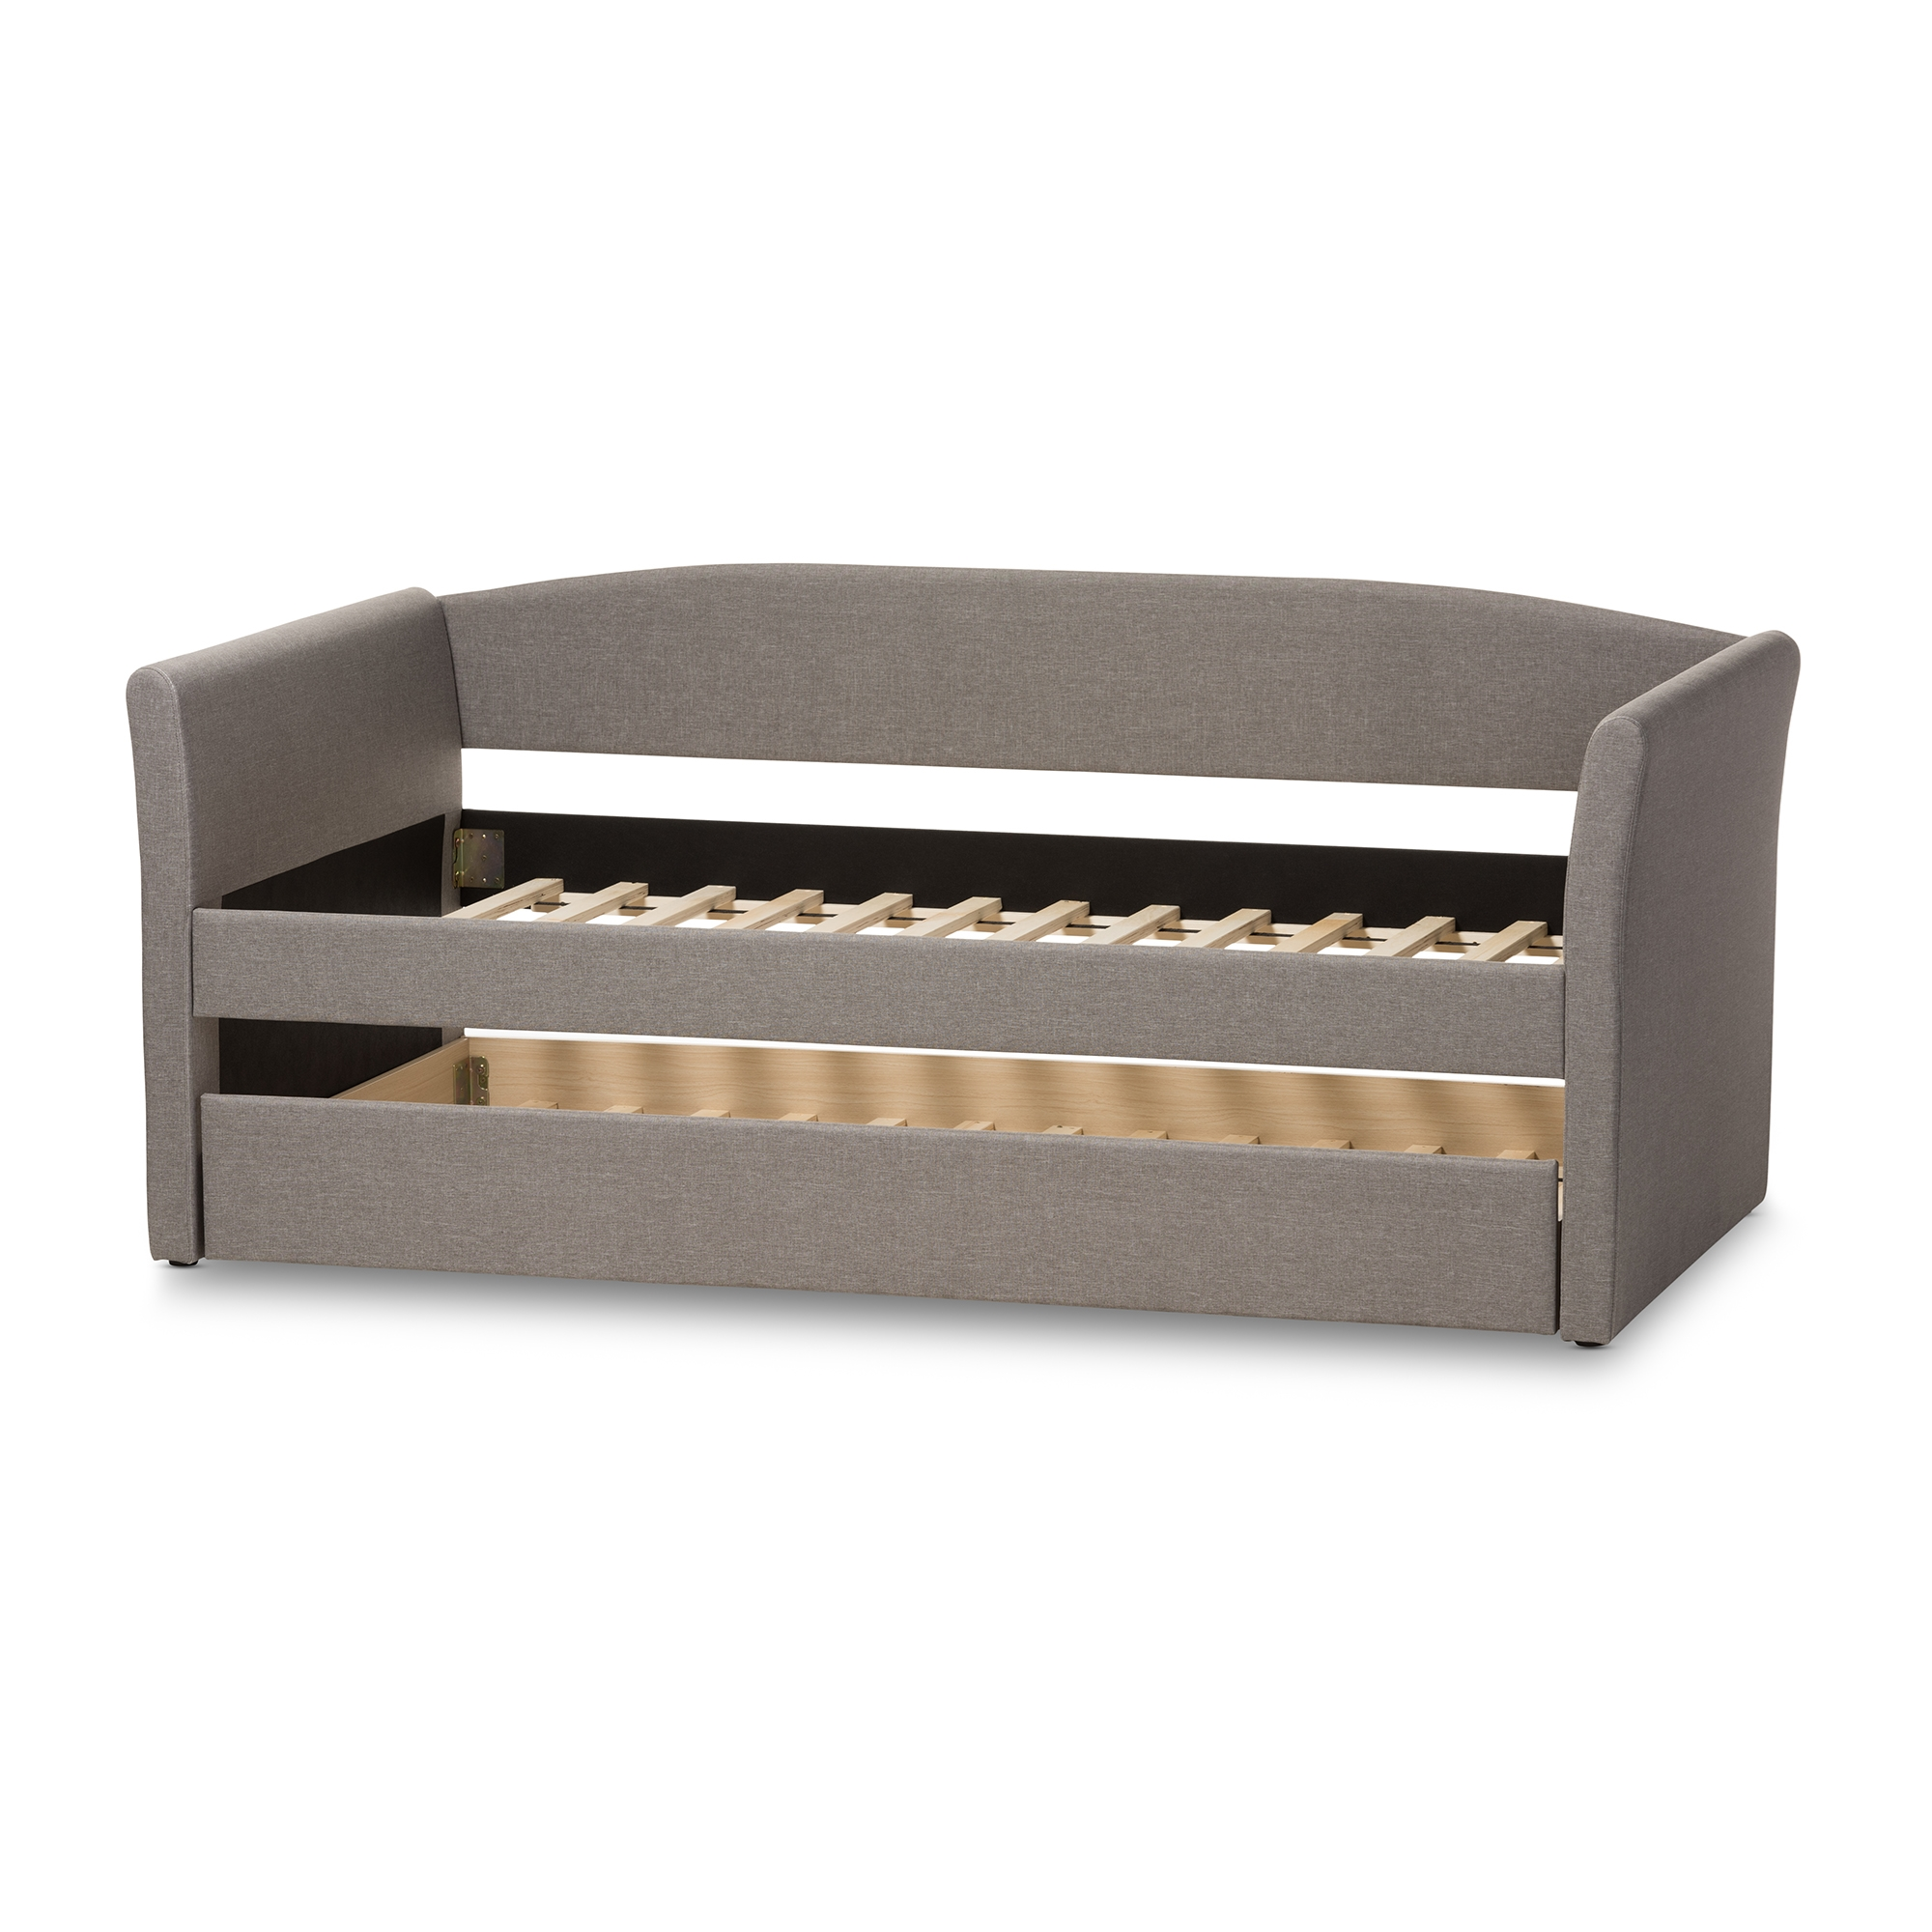 Interesting Modern Daybed Leather Camino And Contemporary Grey Fabric On Design Ideas